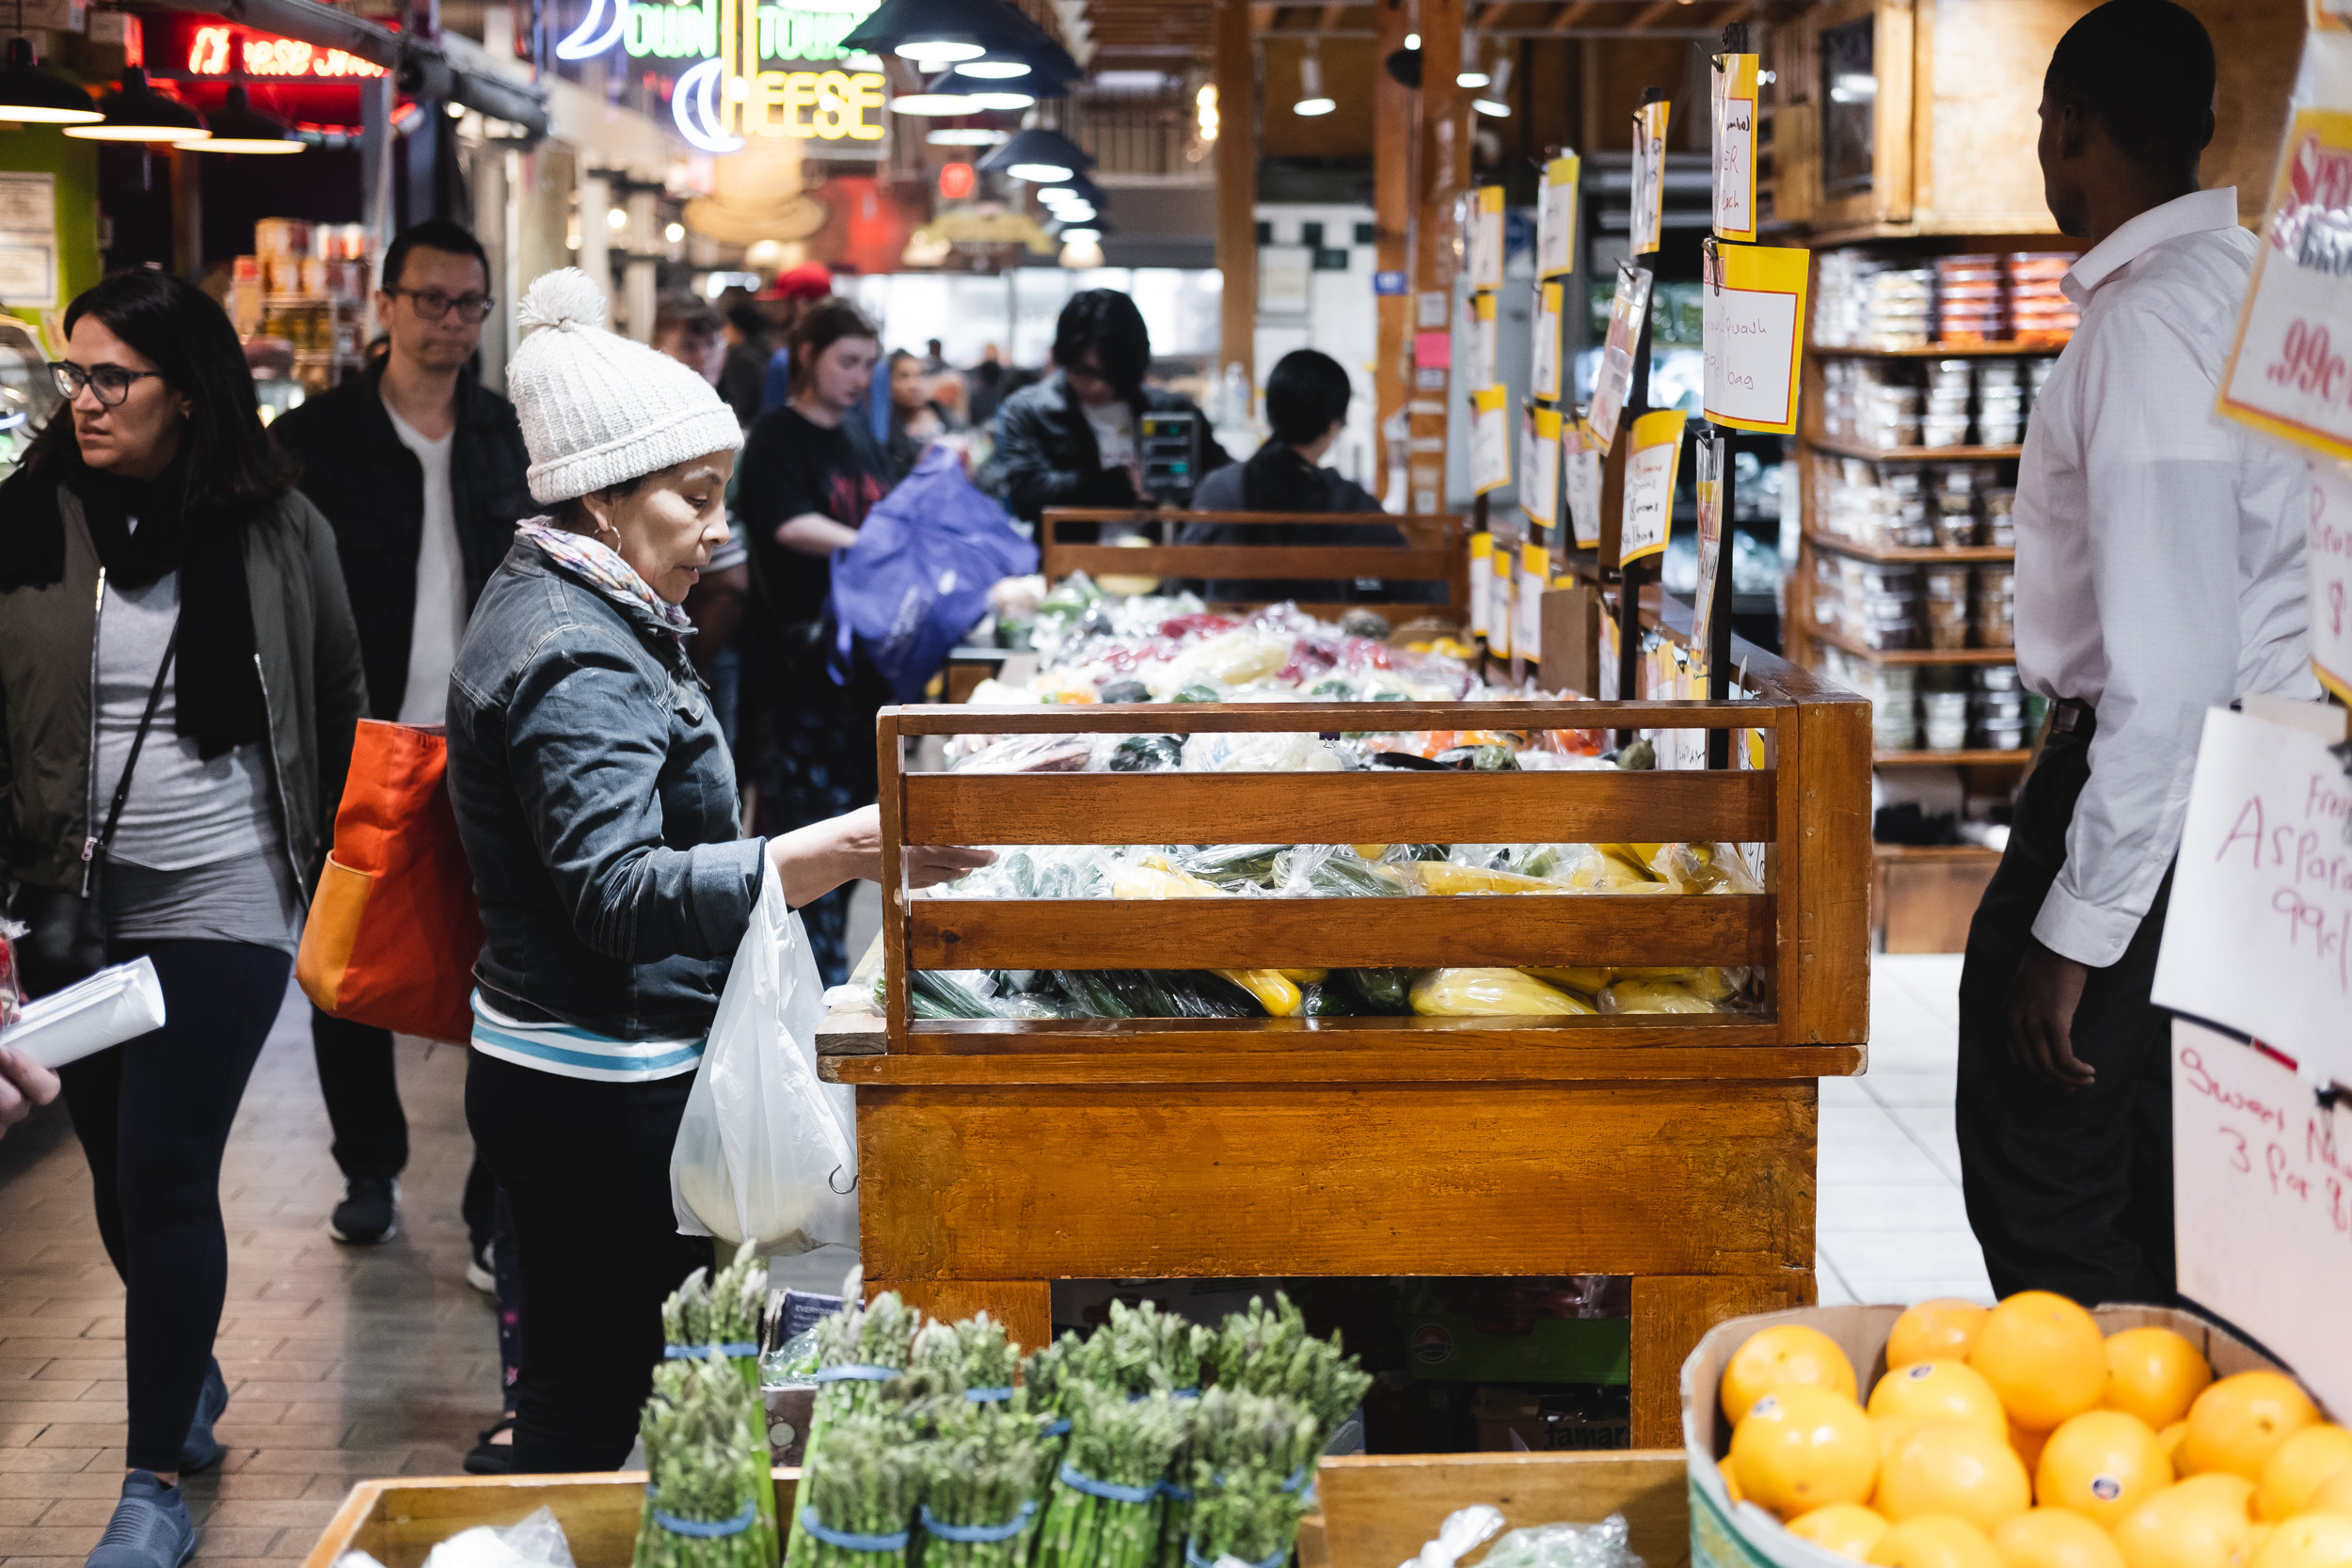 2019_READING TERMINAL MARKET_FOOD_THE PHILLY CHECKLIST-18.jpg